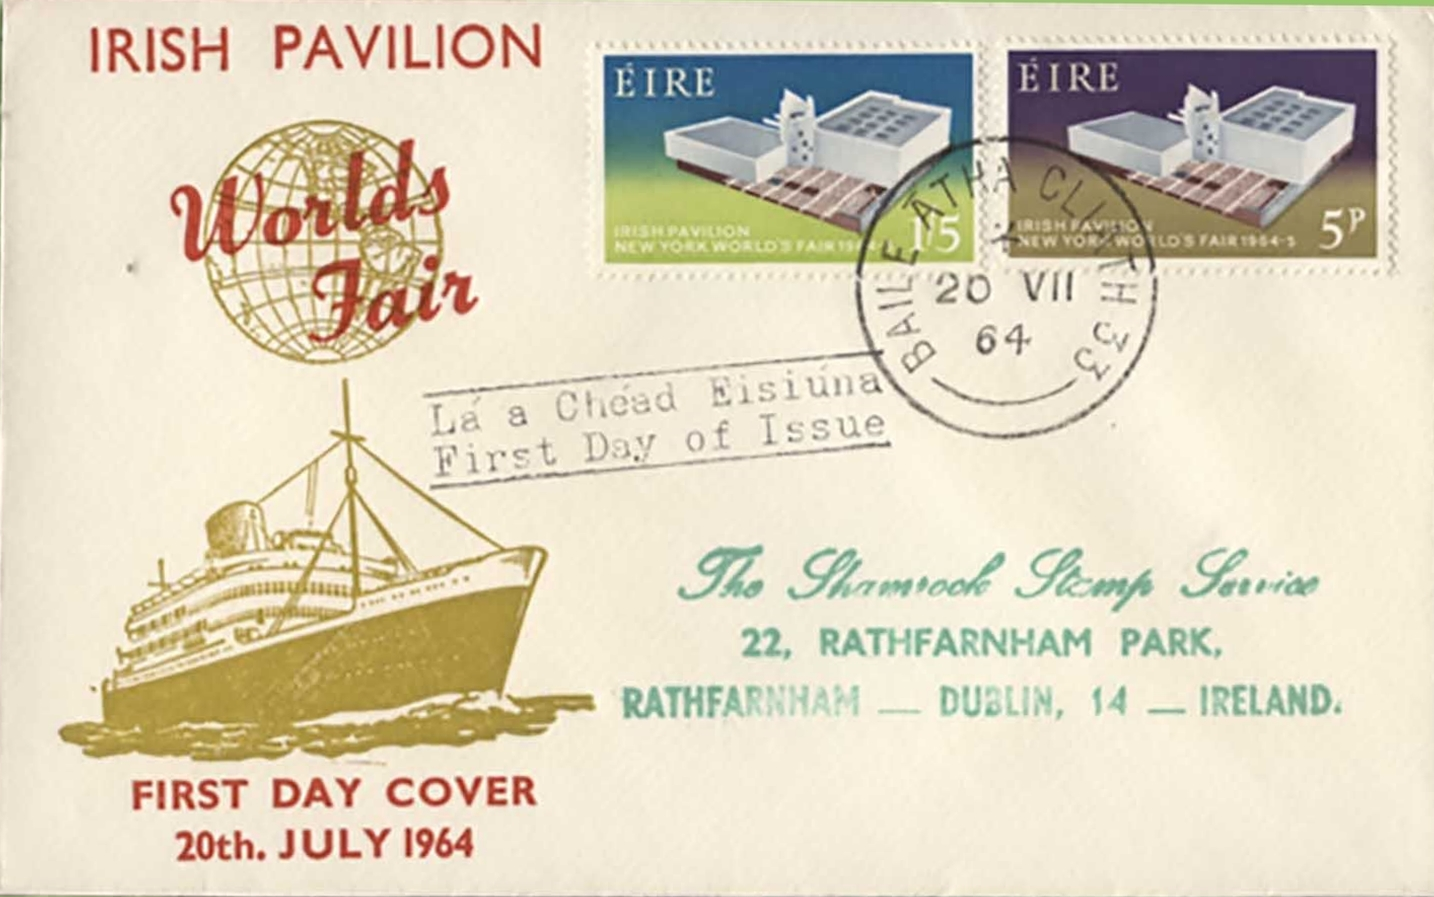 Ireland - Scott #194-195 (1964) - first day cover from the Irish Pavilion of the 1964-1965 New York World's Fair